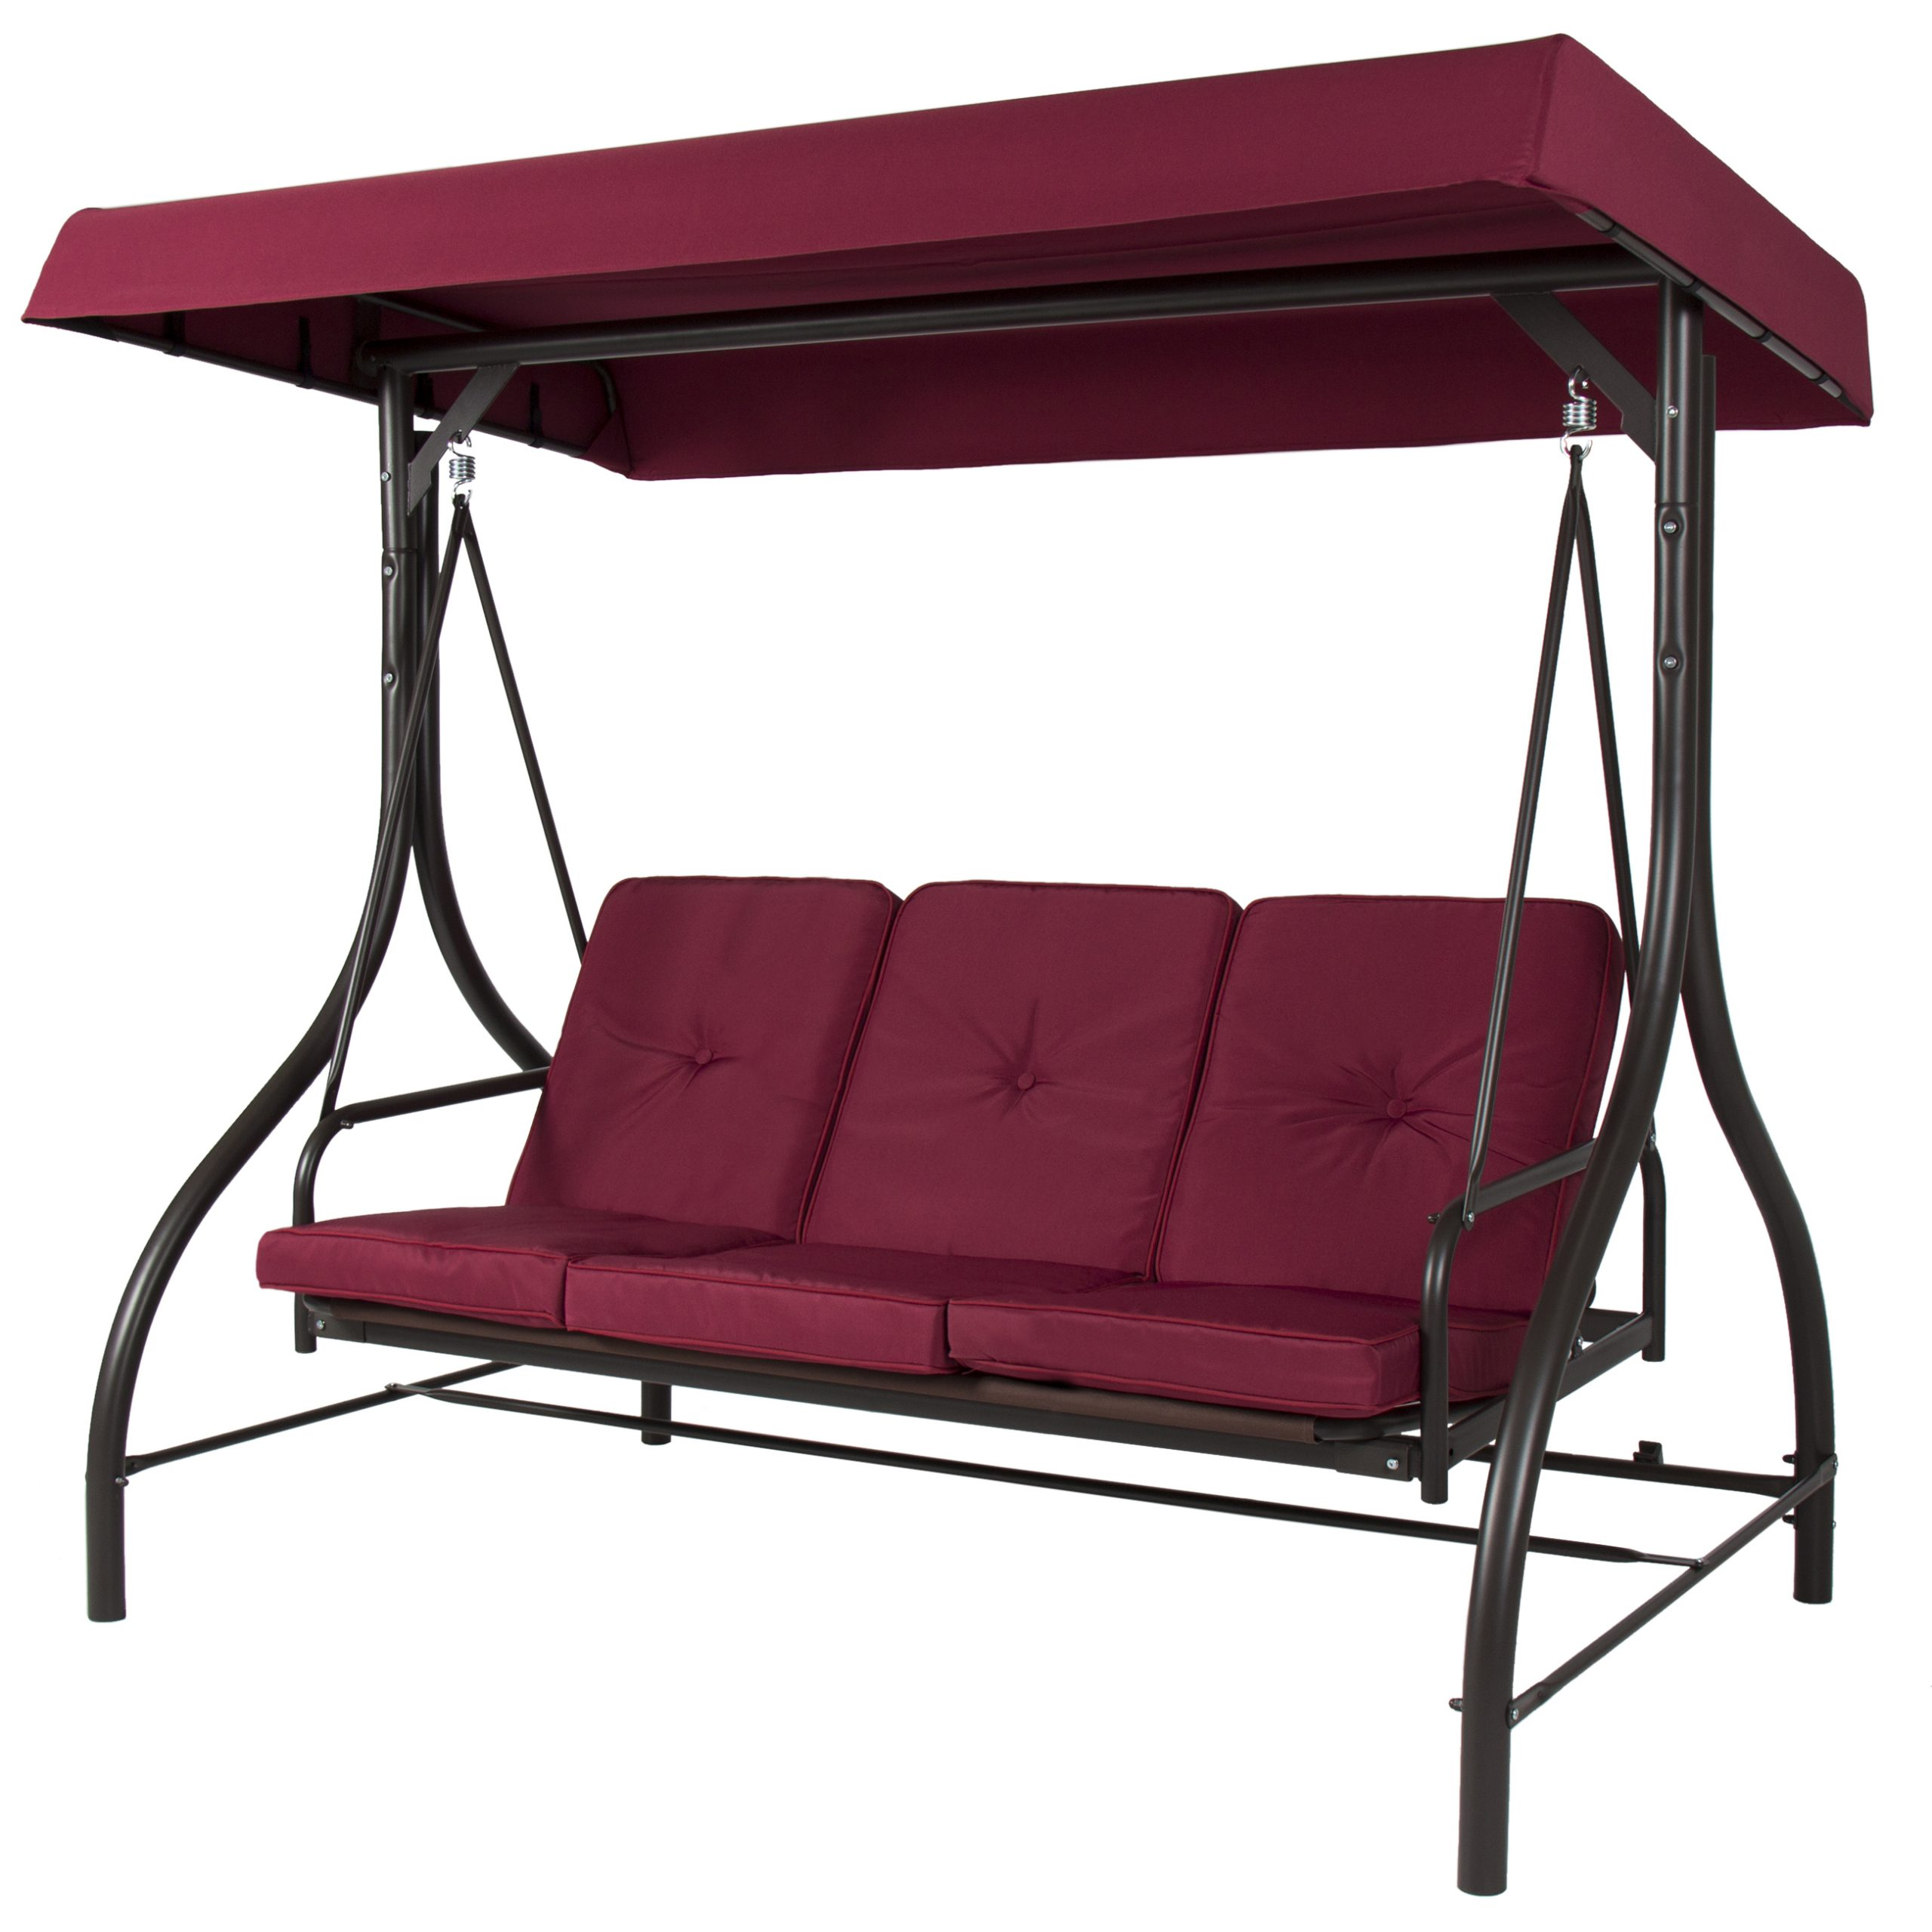 Canopy Porch Swings Intended For Current Best Choice Products 3 Seat Patio Porch Swing – Walmart (View 4 of 25)